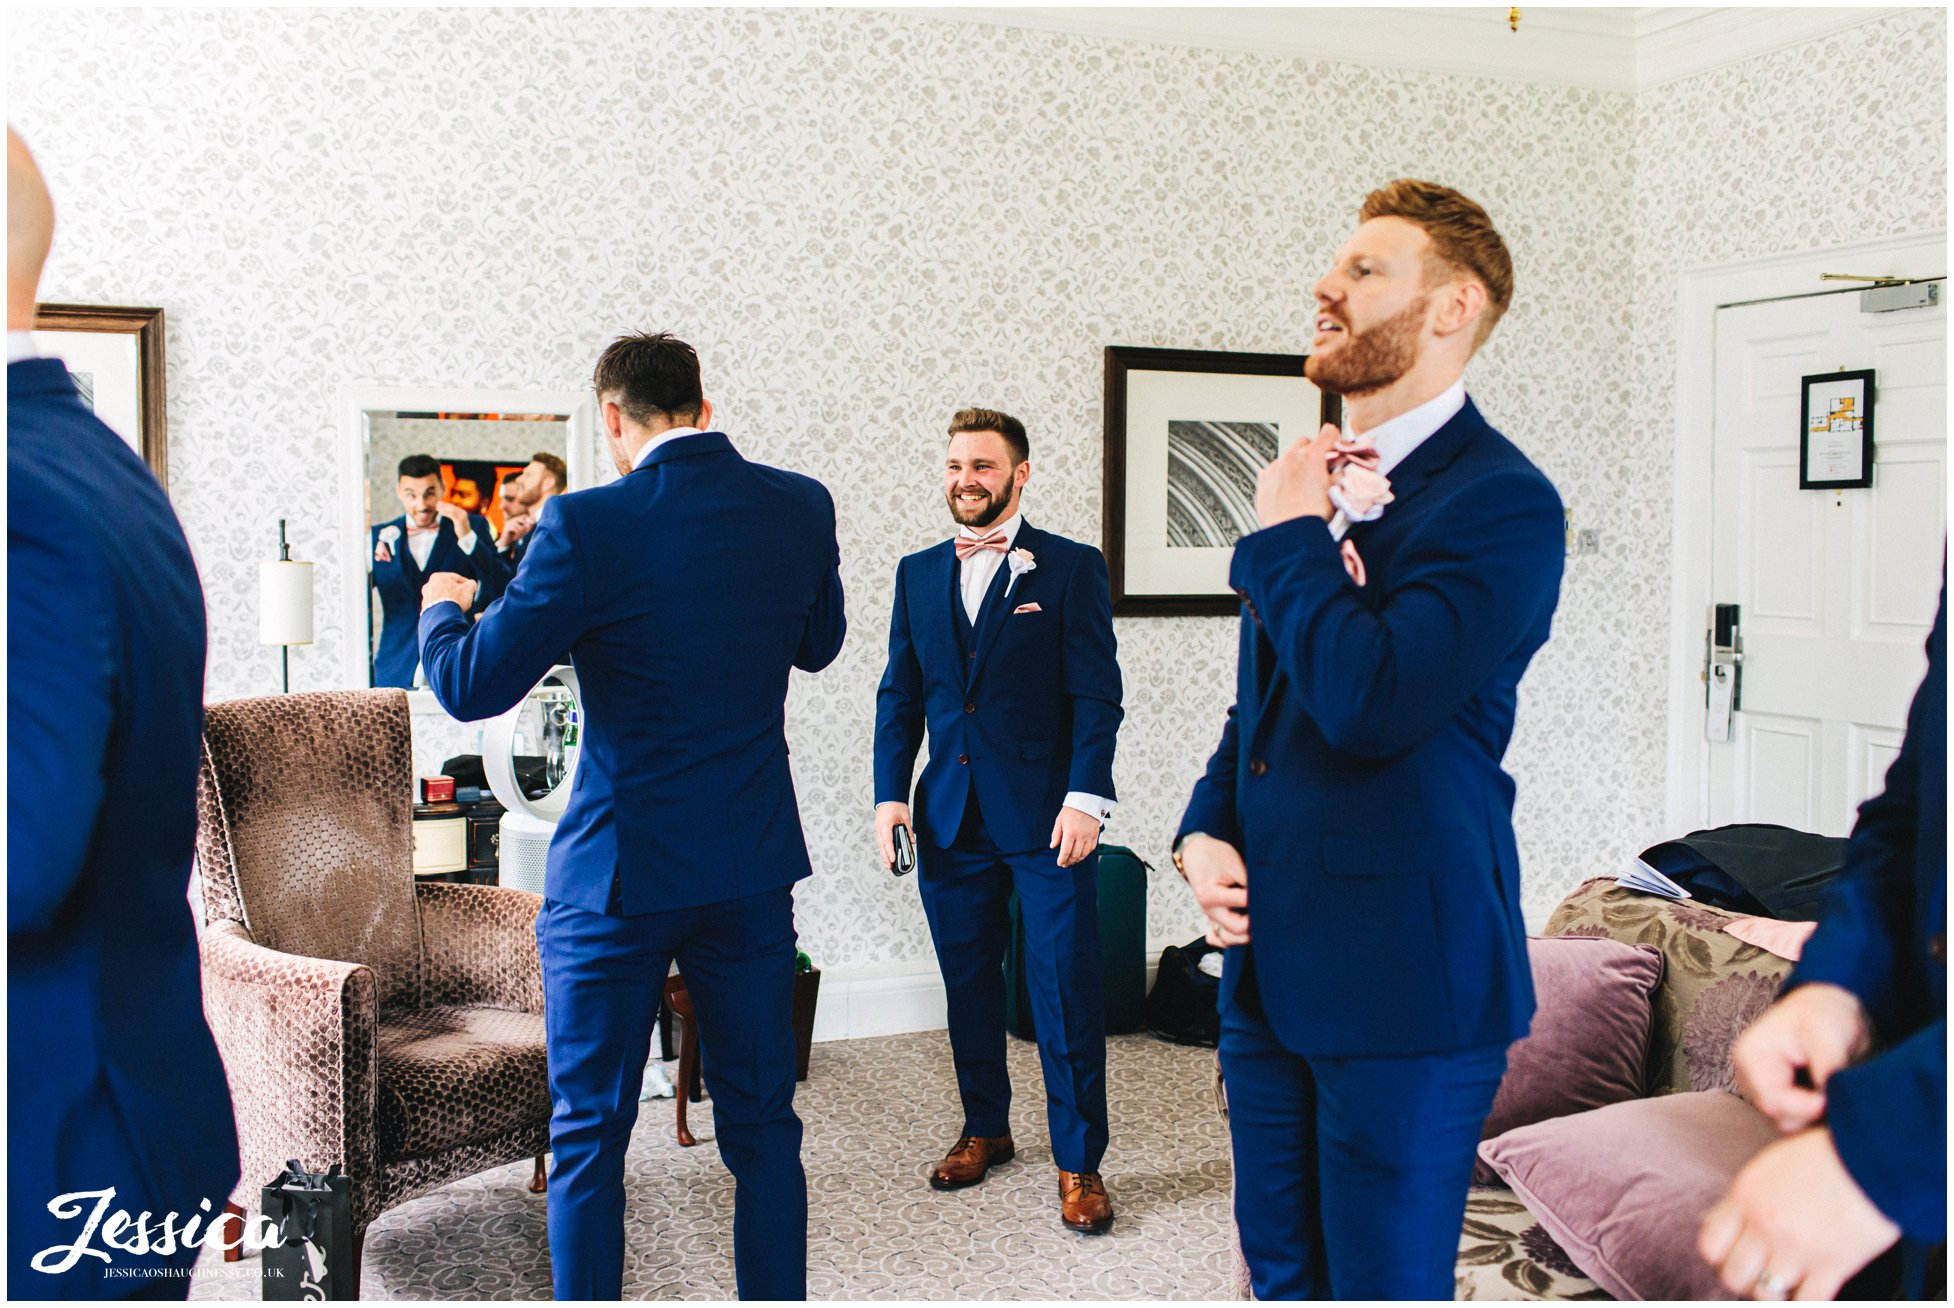 the groom & groomsmen are dressed ready for the wedding at mottram hall